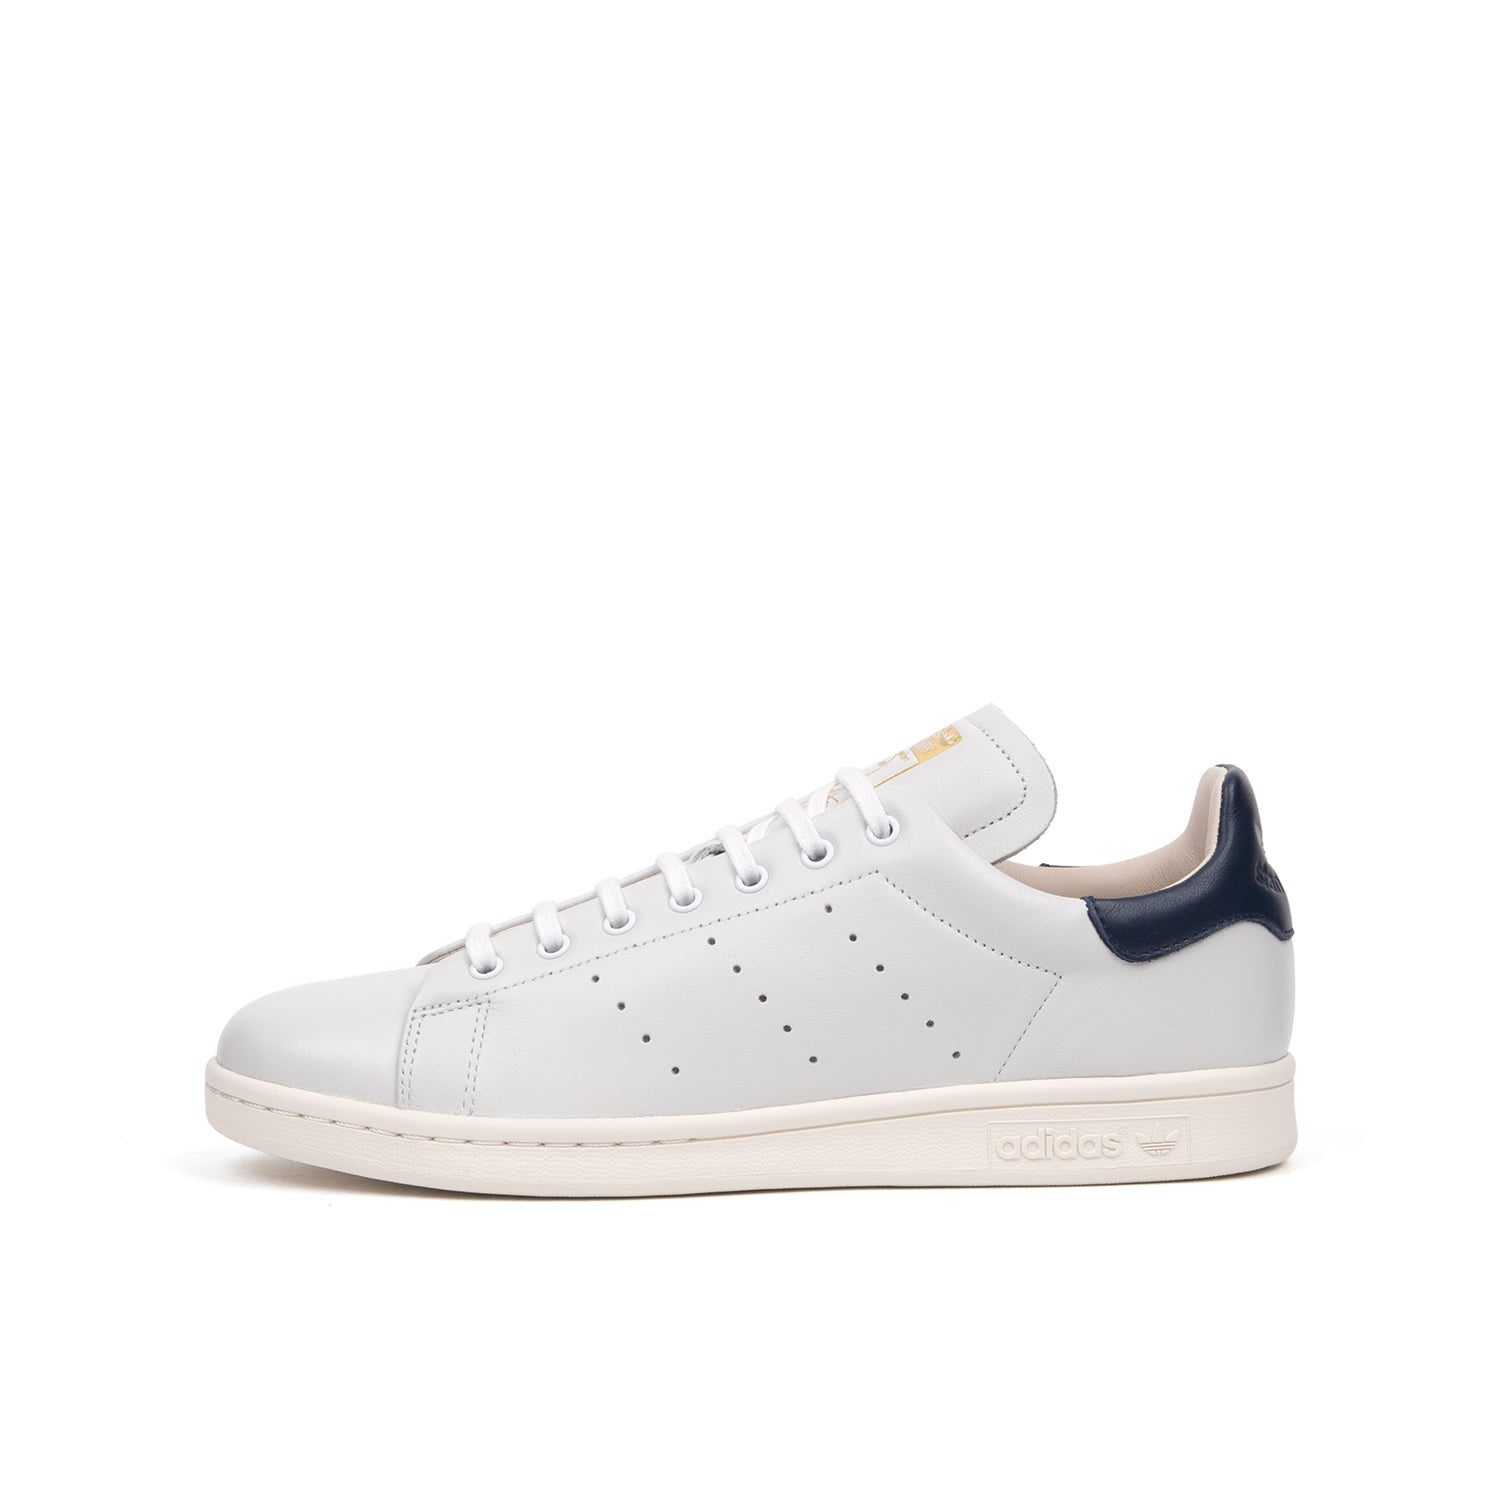 new arrival 4a904 42ab7 adidas Originals Stan Smith Recon White – Concrete